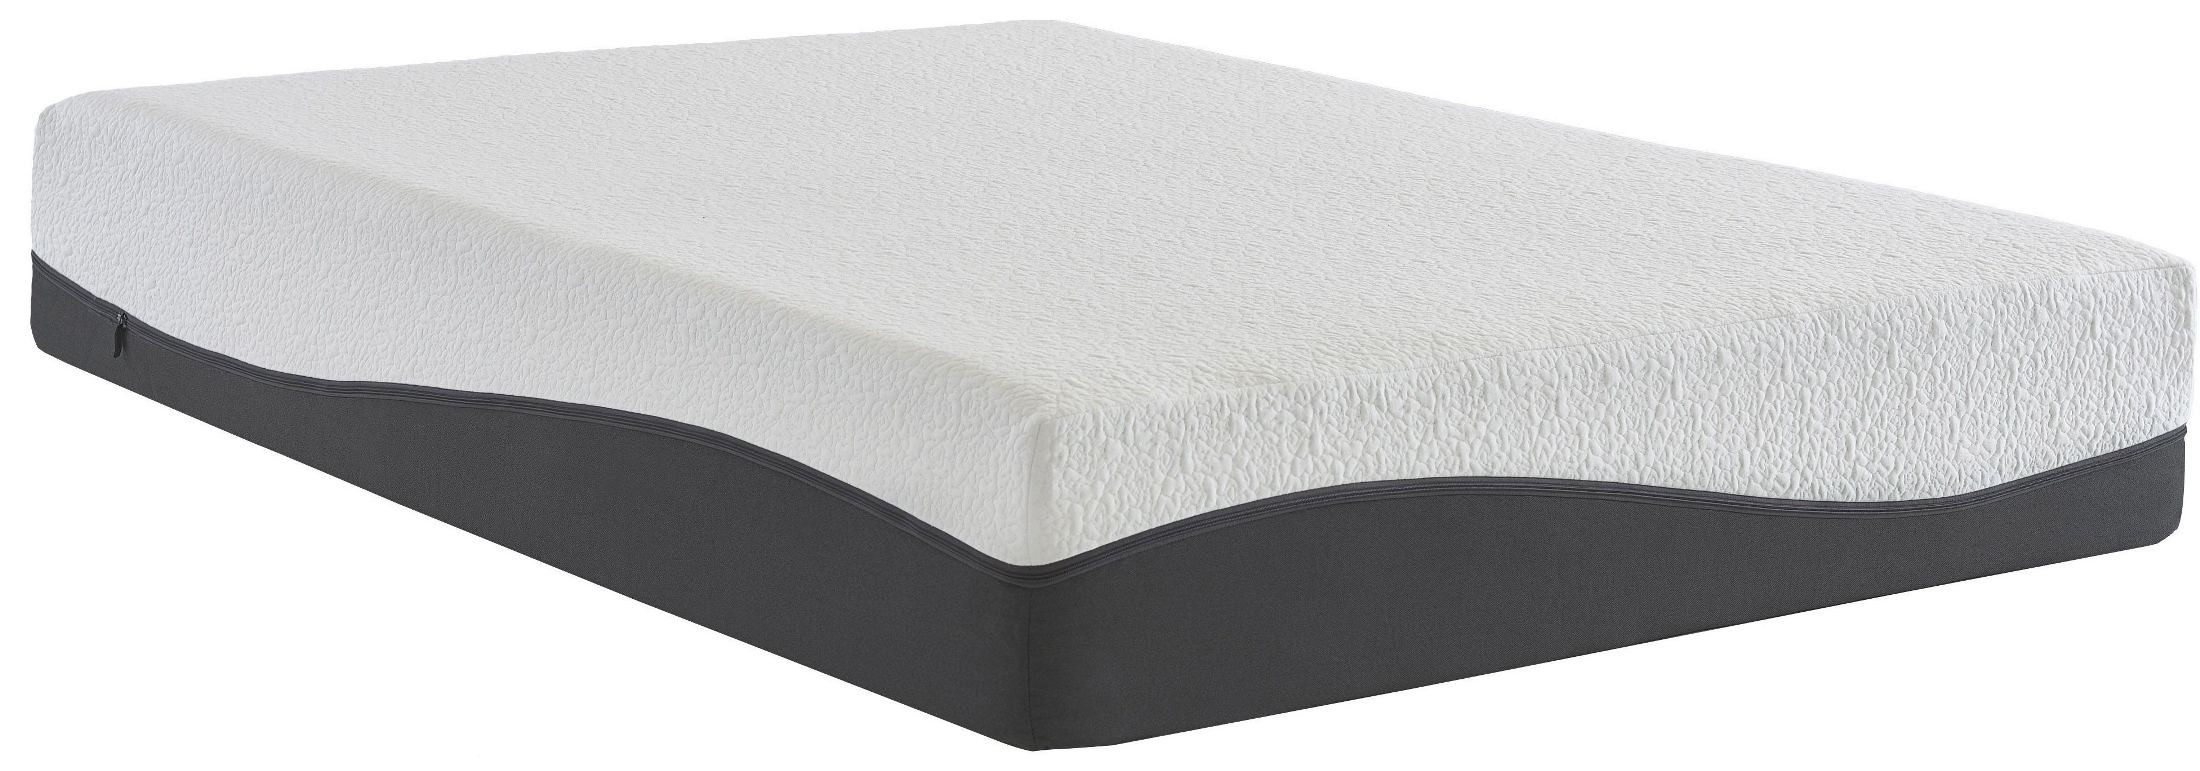 Ashland 12 Memory Foam Full Mattress Ashlandf 012013364772 Klaussner